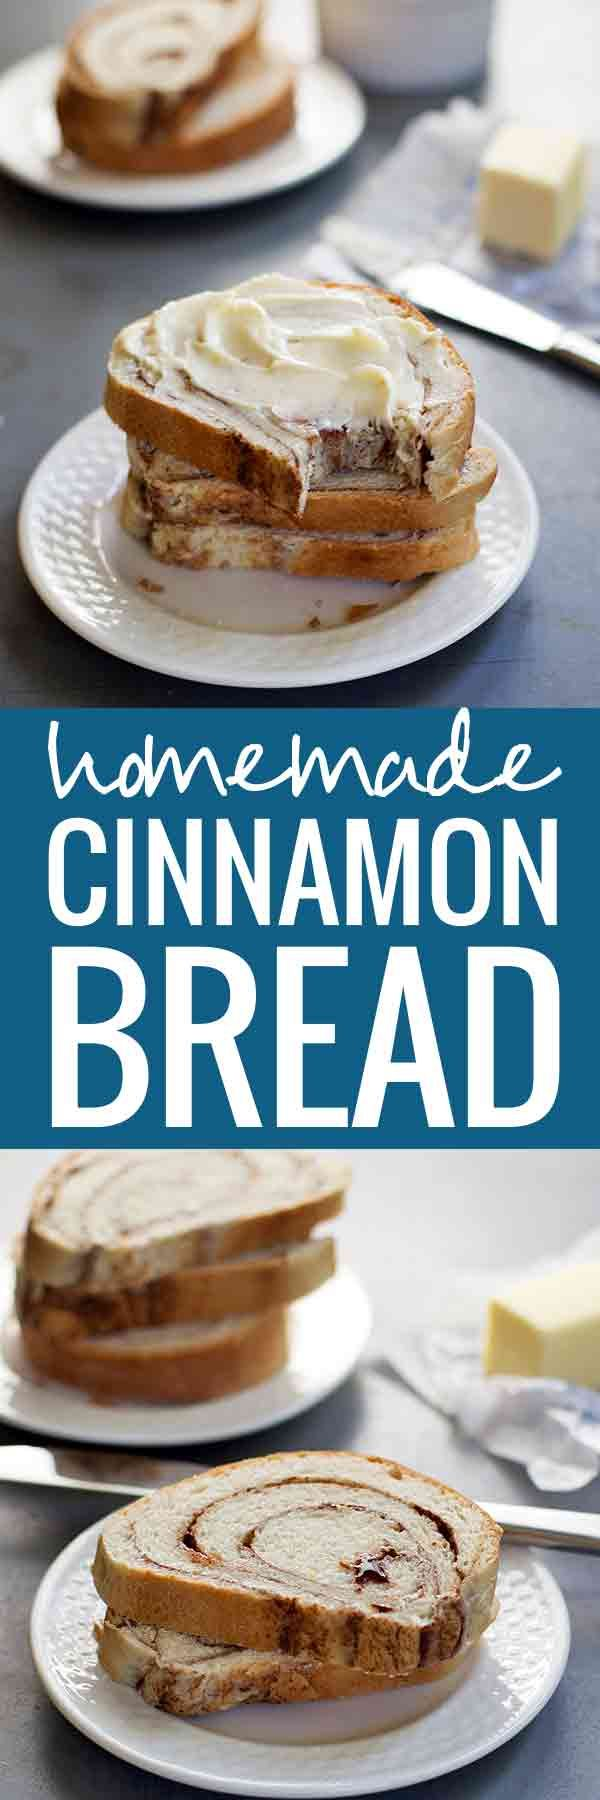 Homemade Cinnamon Swirl Bread | Recipe | Homemade, Warm ...